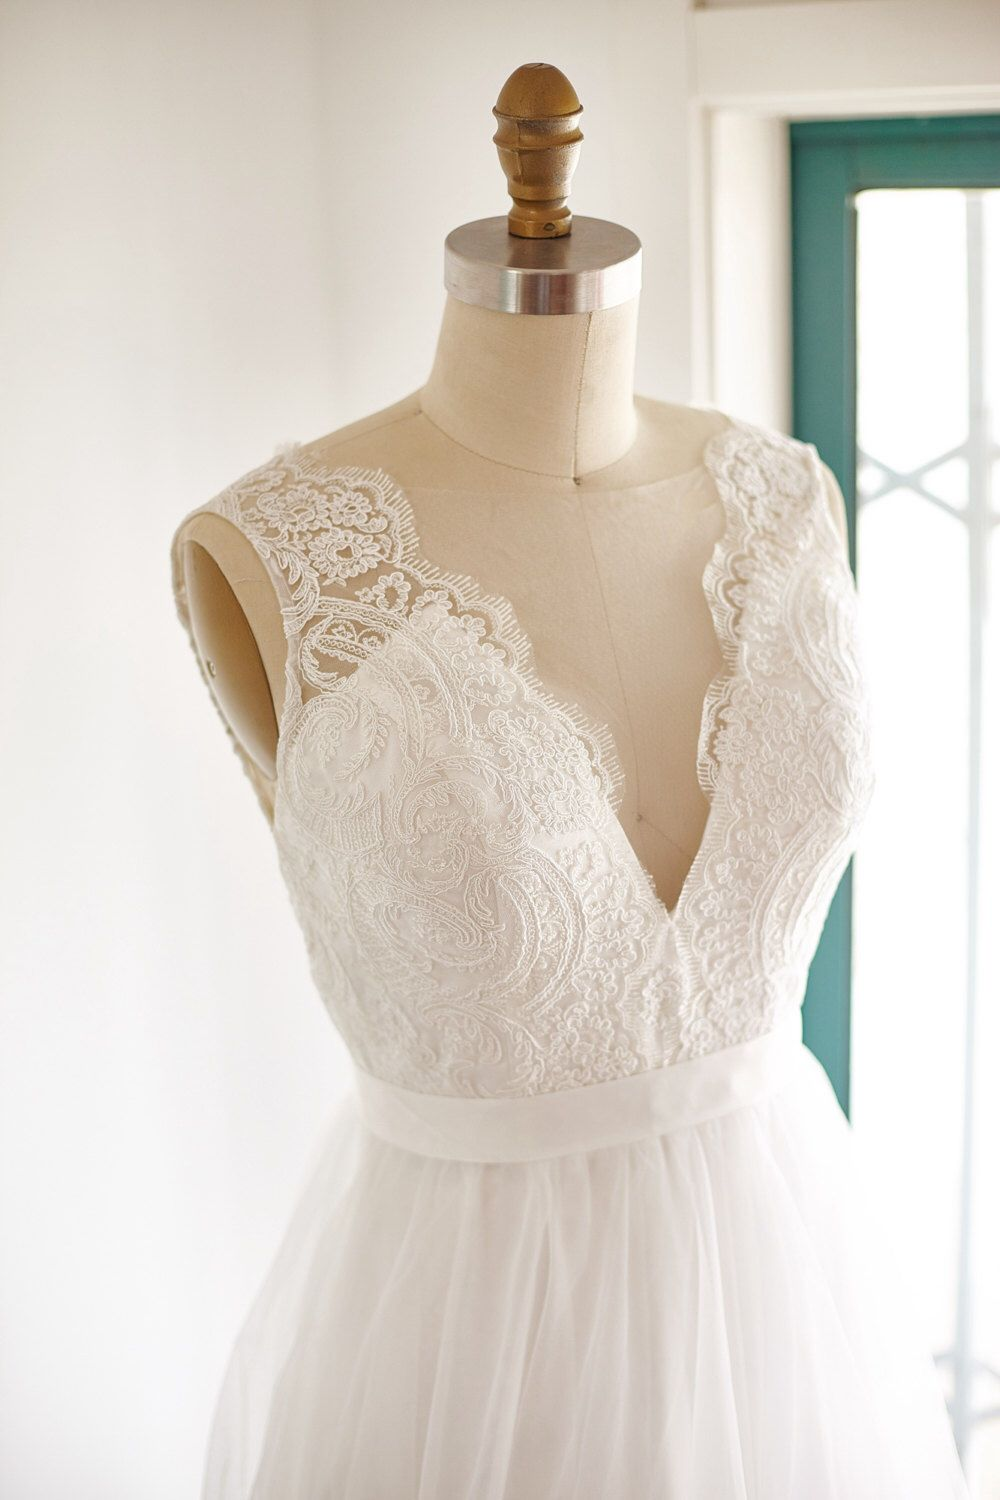 Sheer illusion lace tulle beach boho wedding dress bridal gown by